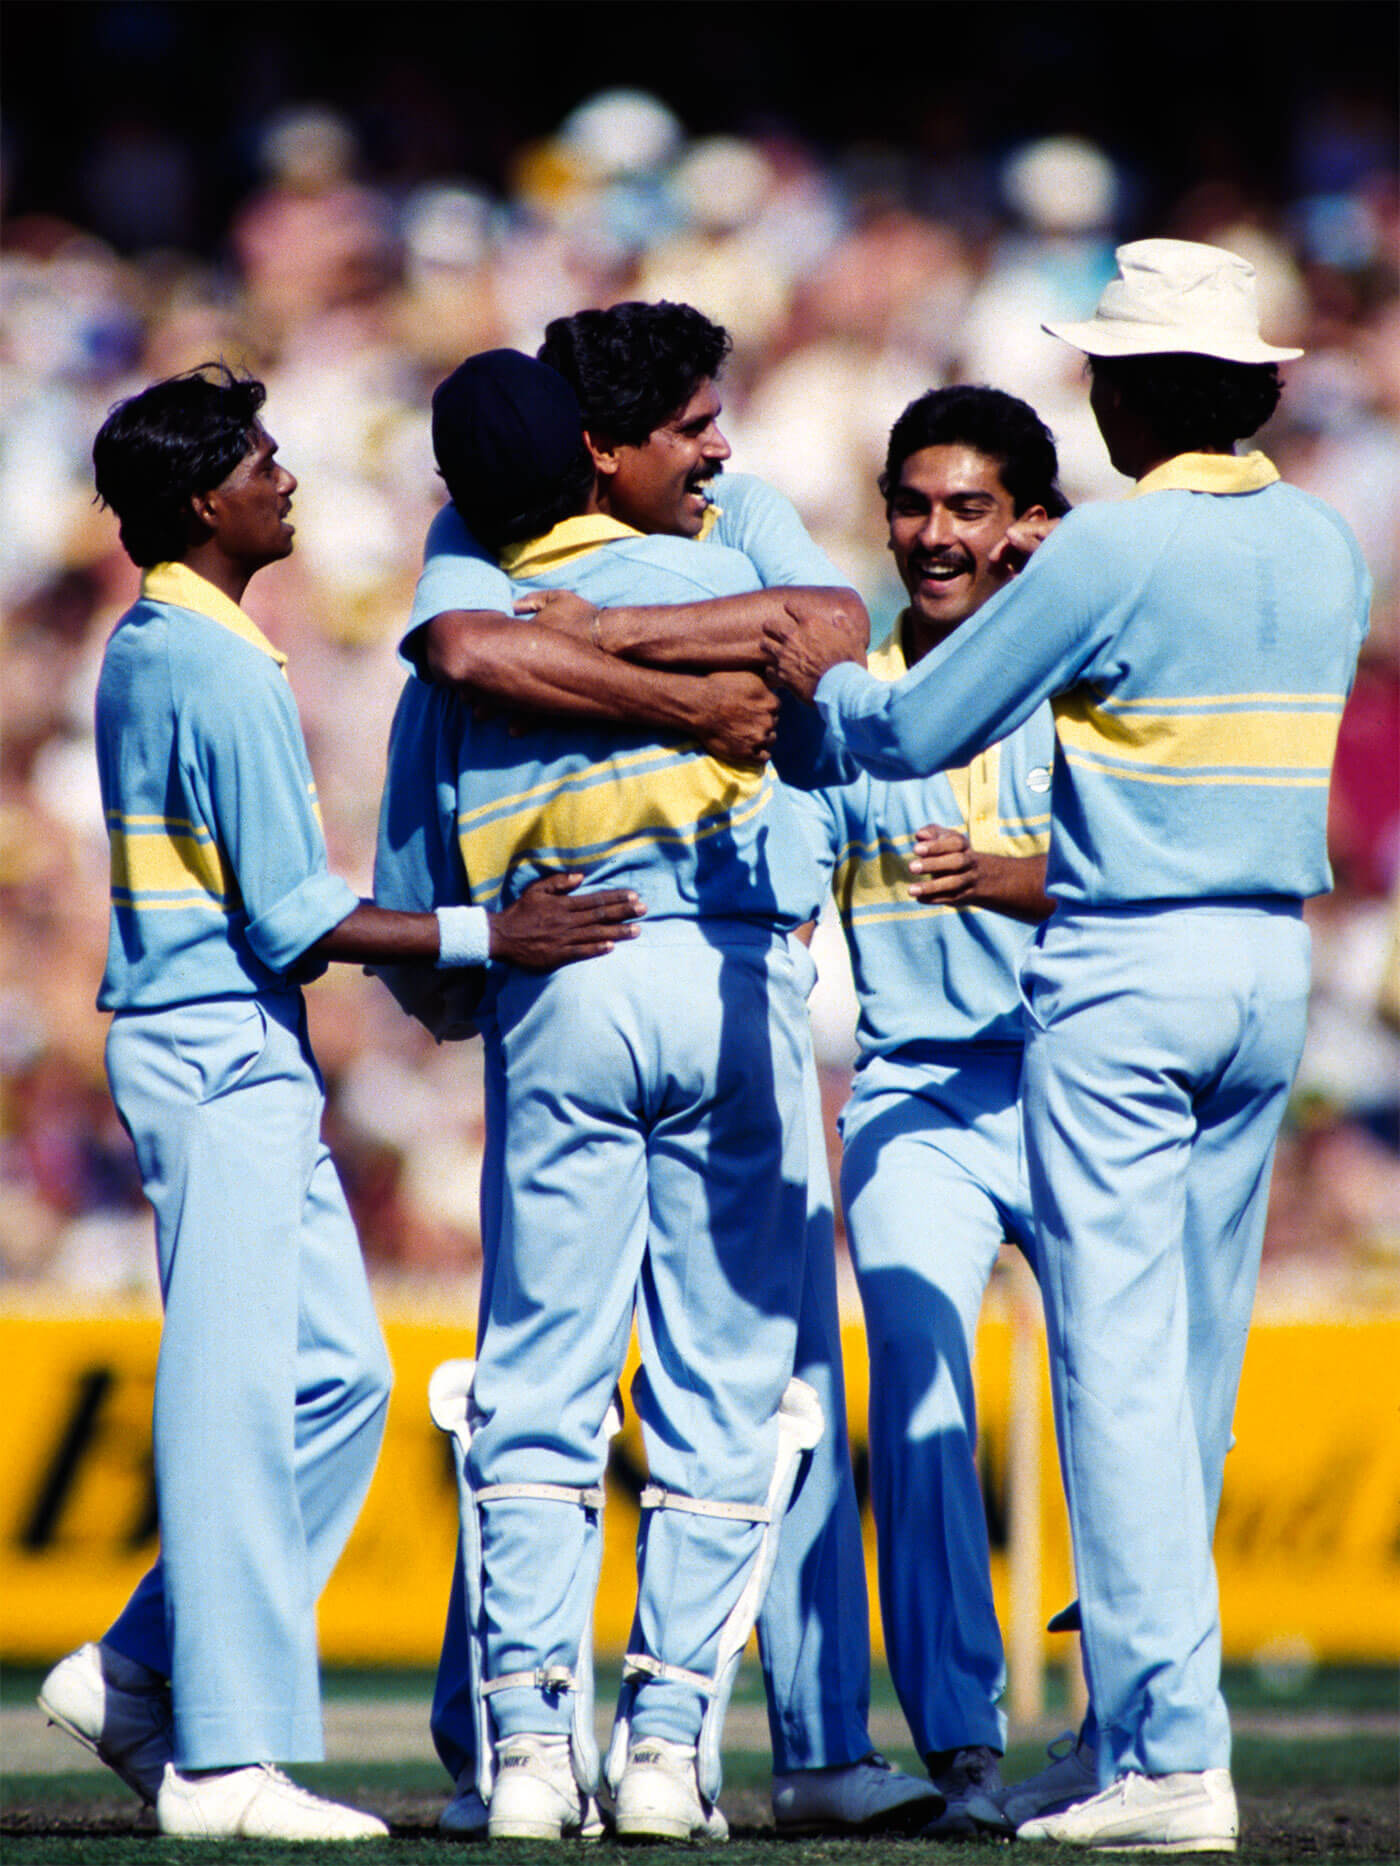 Siva (far left) is perhaps best remembered for his performance in the World Championship of Cricket in 1985, taking ten wickets in five games